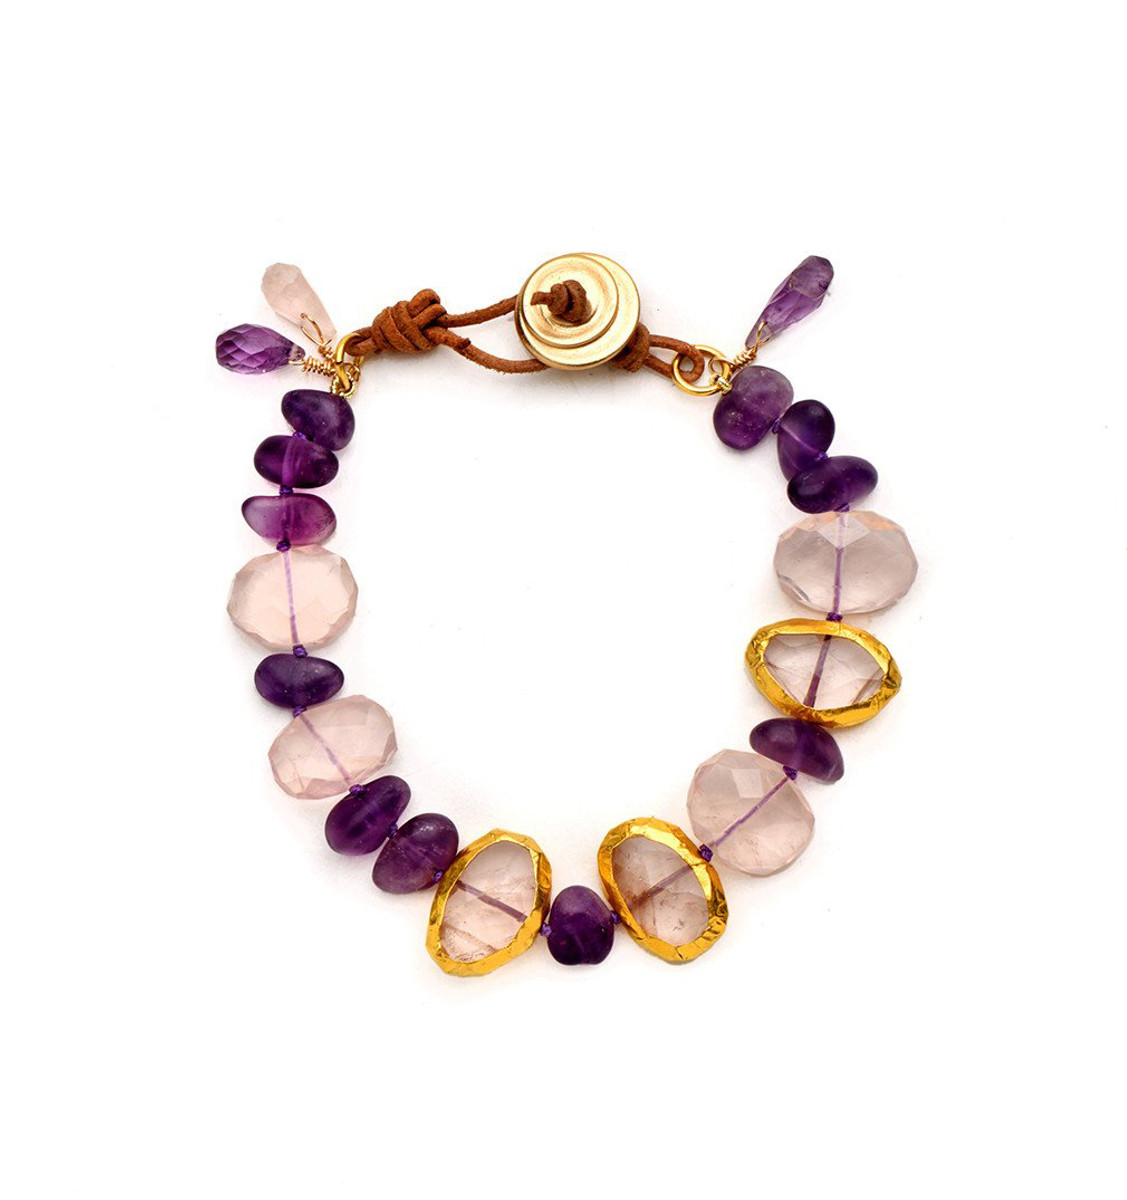 Amethyst Lovers Bracelet - New Arrival